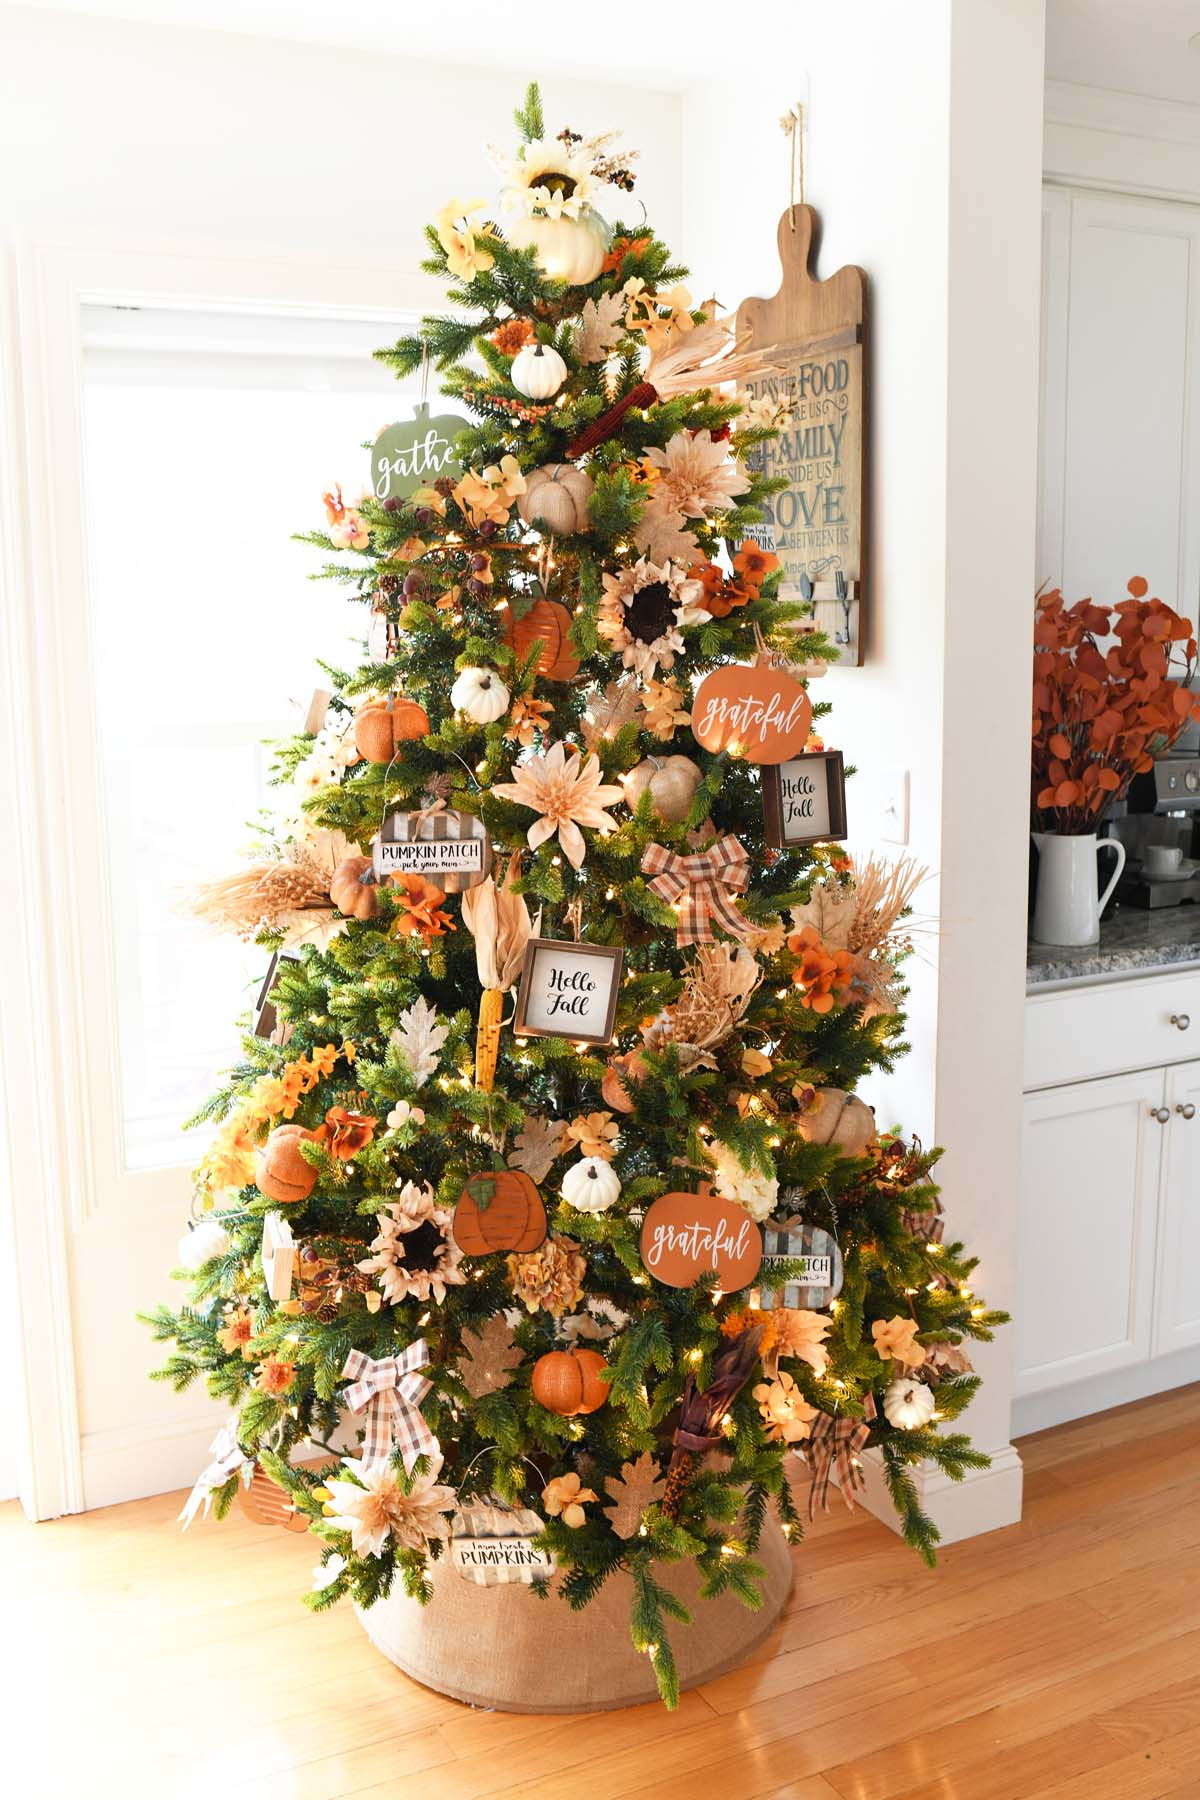 Fall harvest tree decorated with floral and pumpkin decor.